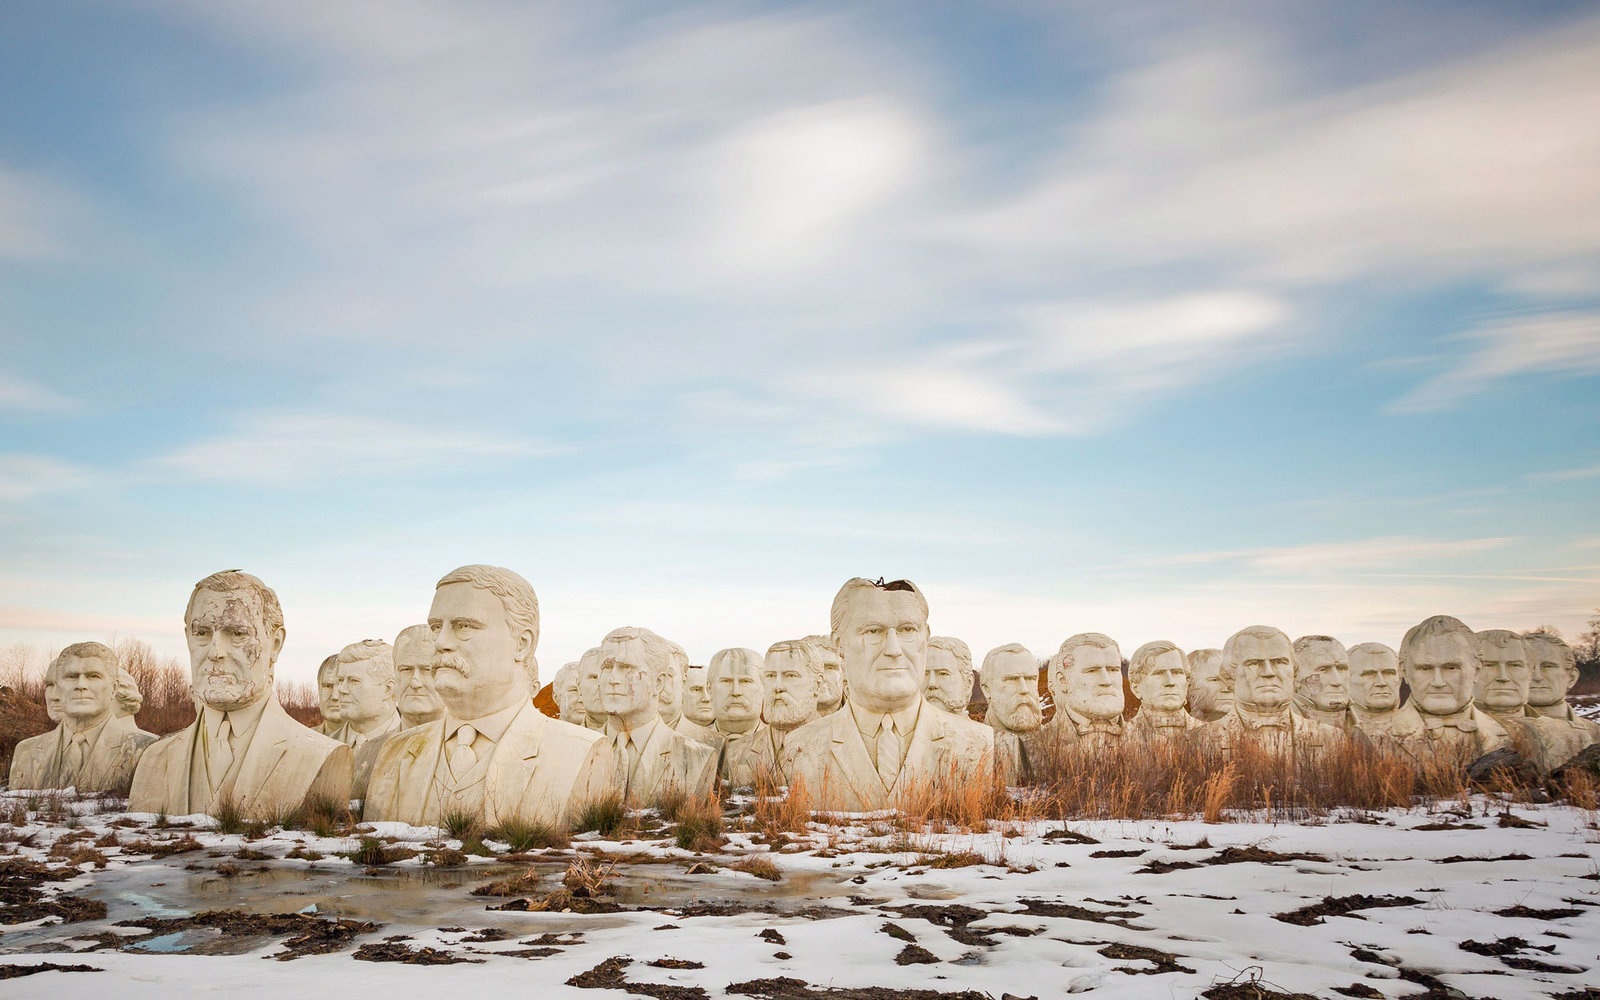 43 Presidential Busts Are Sitting in a Remote Field at a Virginia Farm